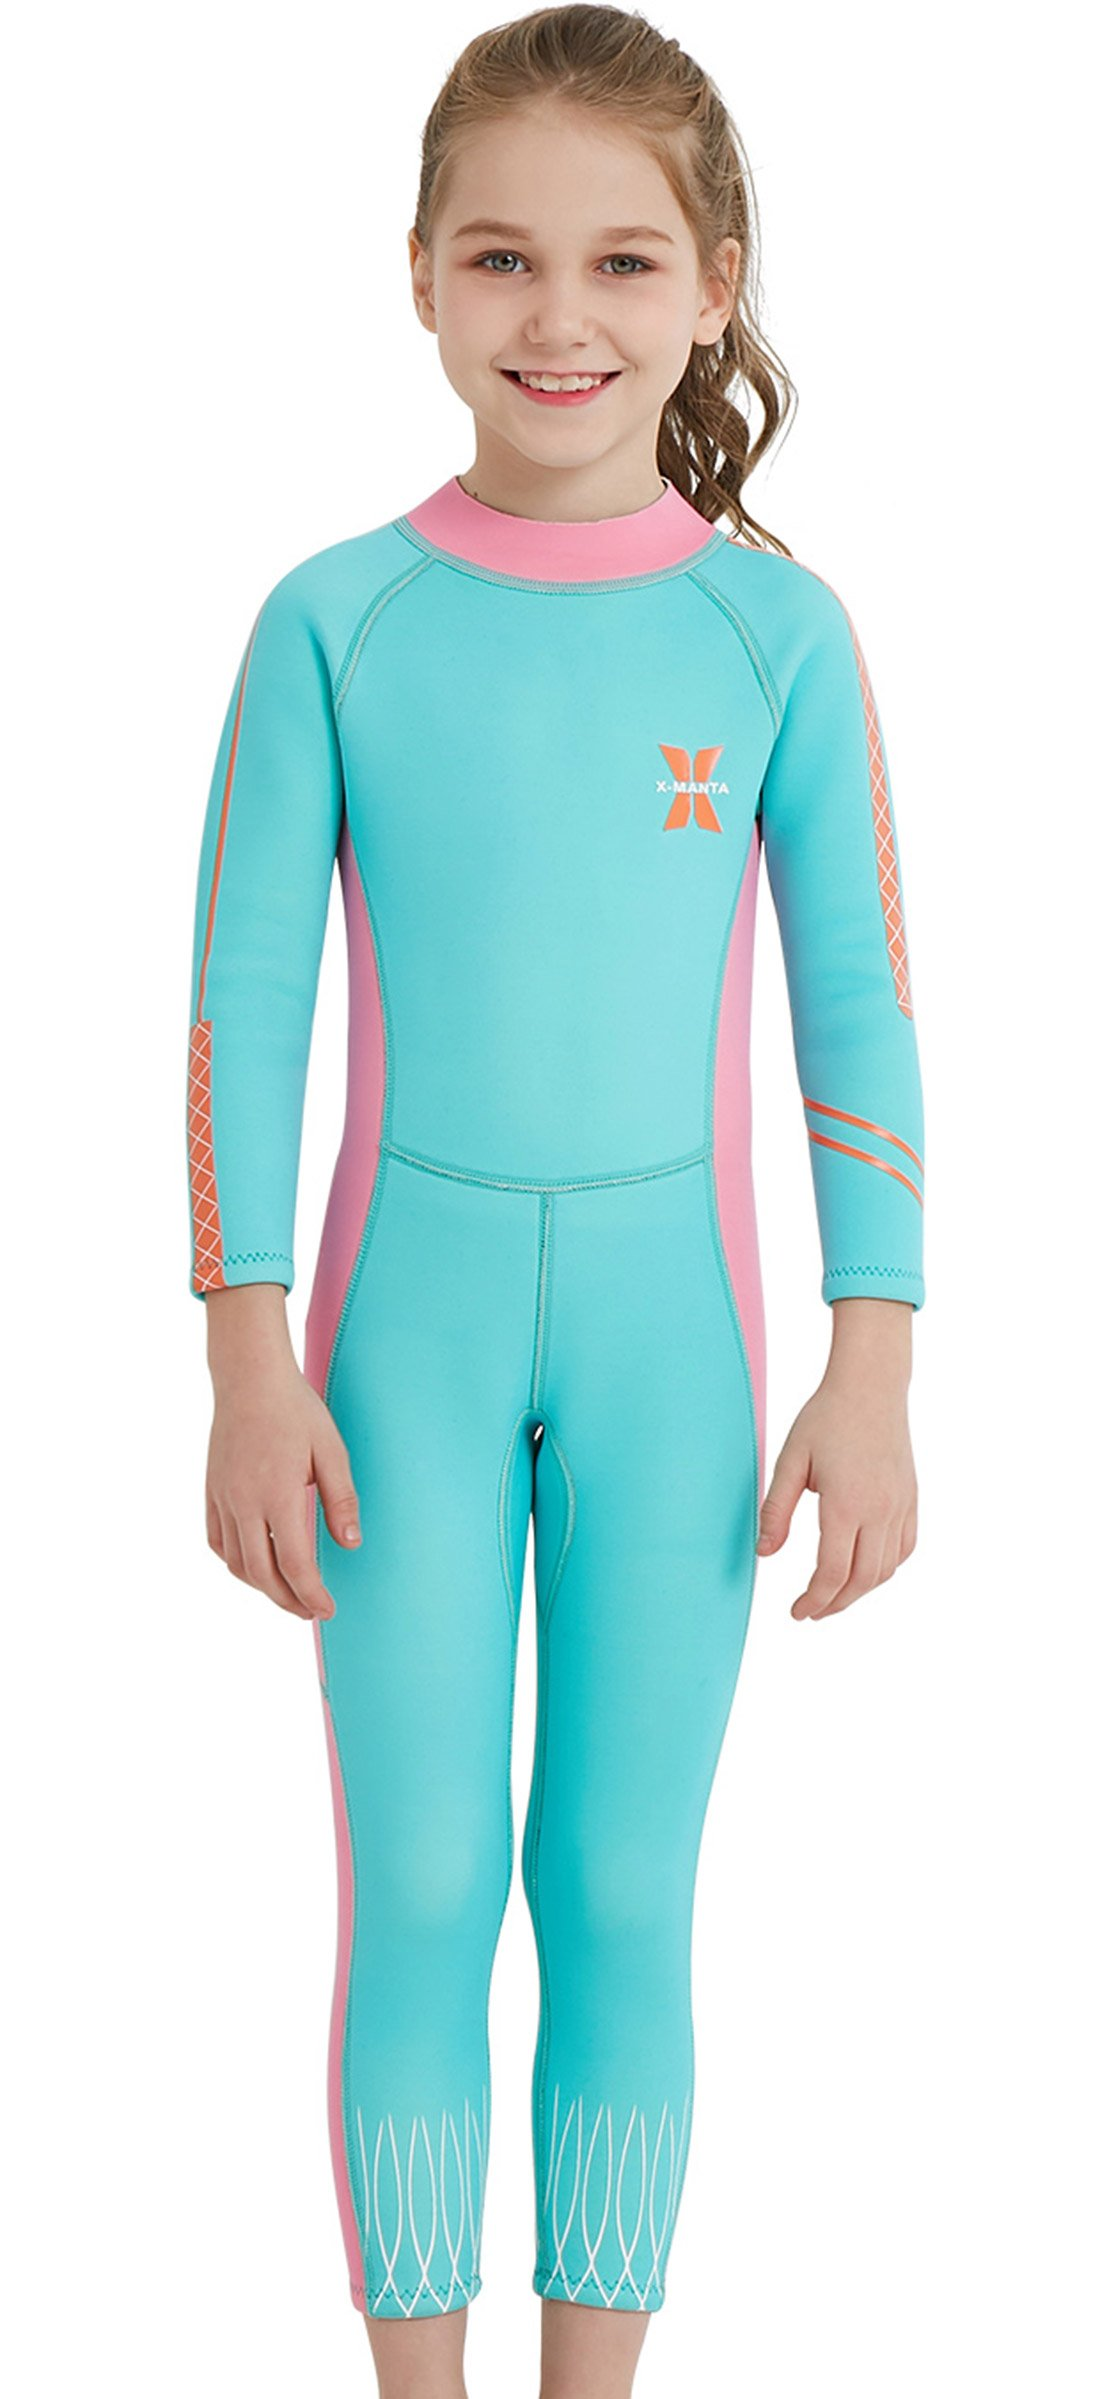 DIVE & SAIL Girls 2.5mm Diving Suit Warm Long Sleeve Full Wetsuit Back Zipper One Piece Swimsuit for Kids Blue S by DIVE & SAIL